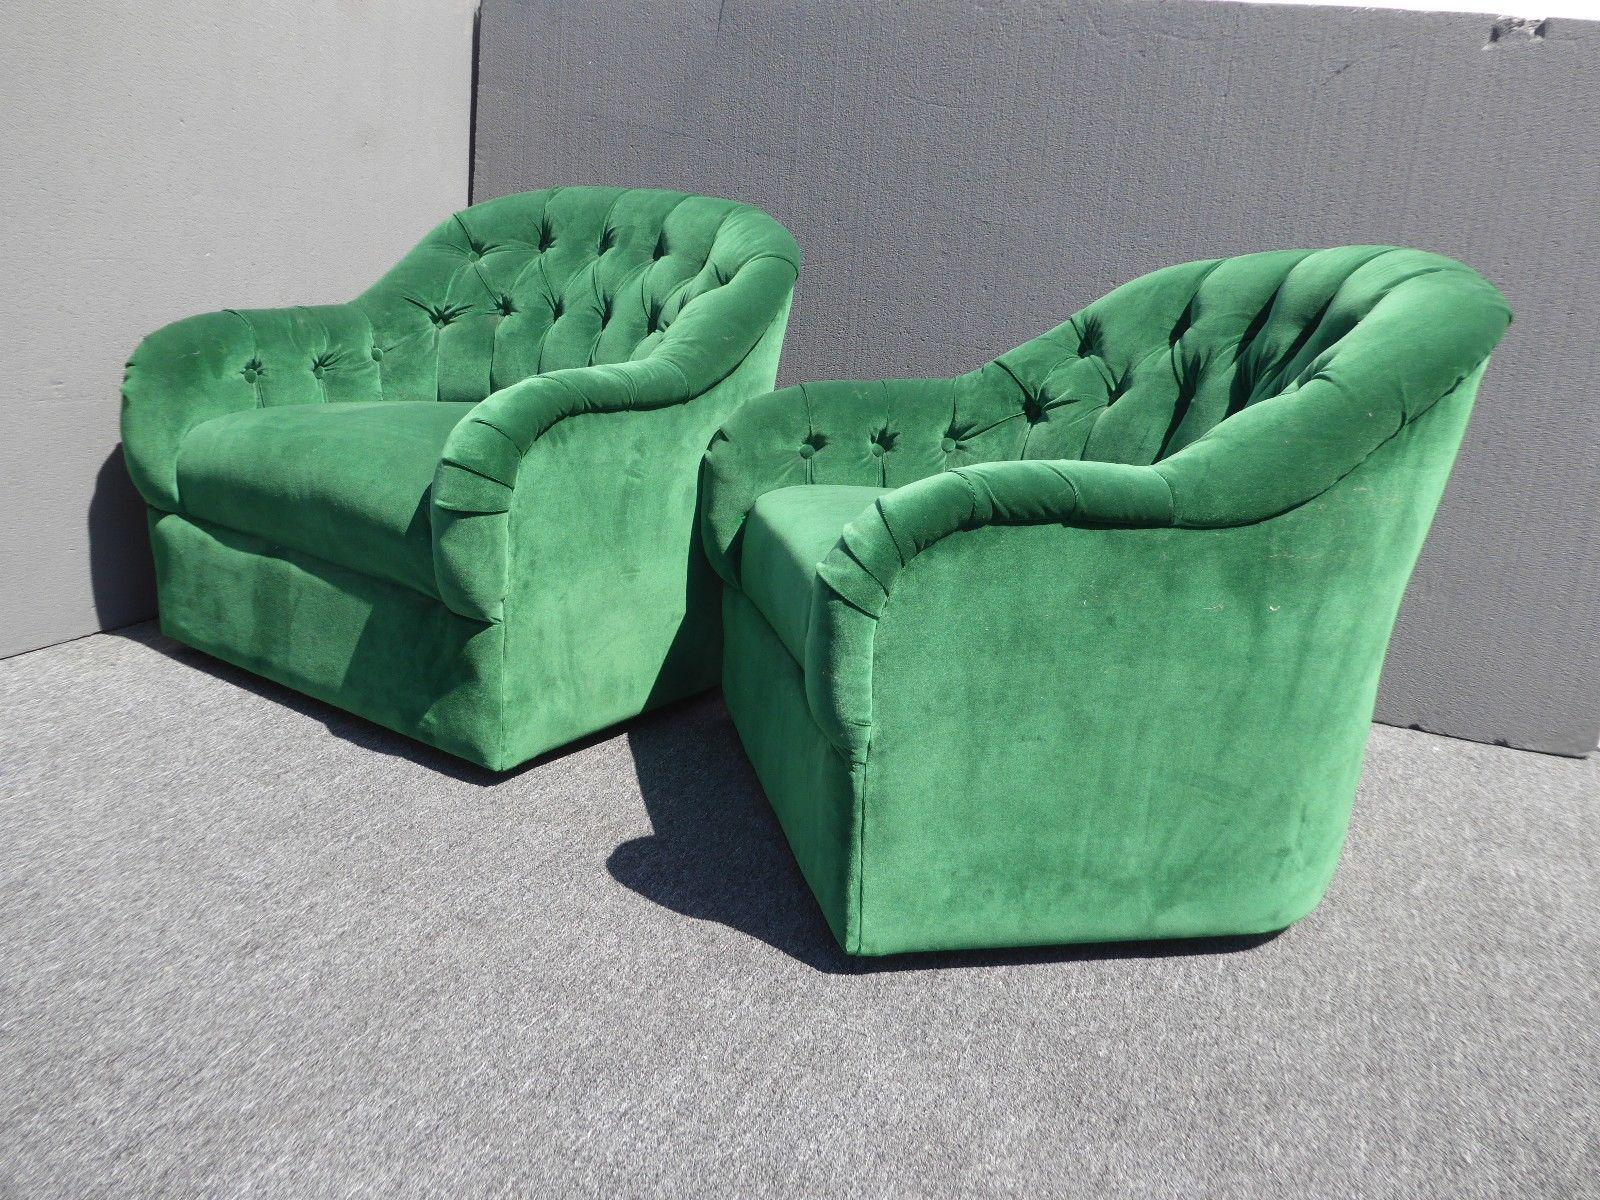 Vintage Pair Of Mid Century Modern Tufted Green Velvet Swivel Club Chairs    Image 5 Of